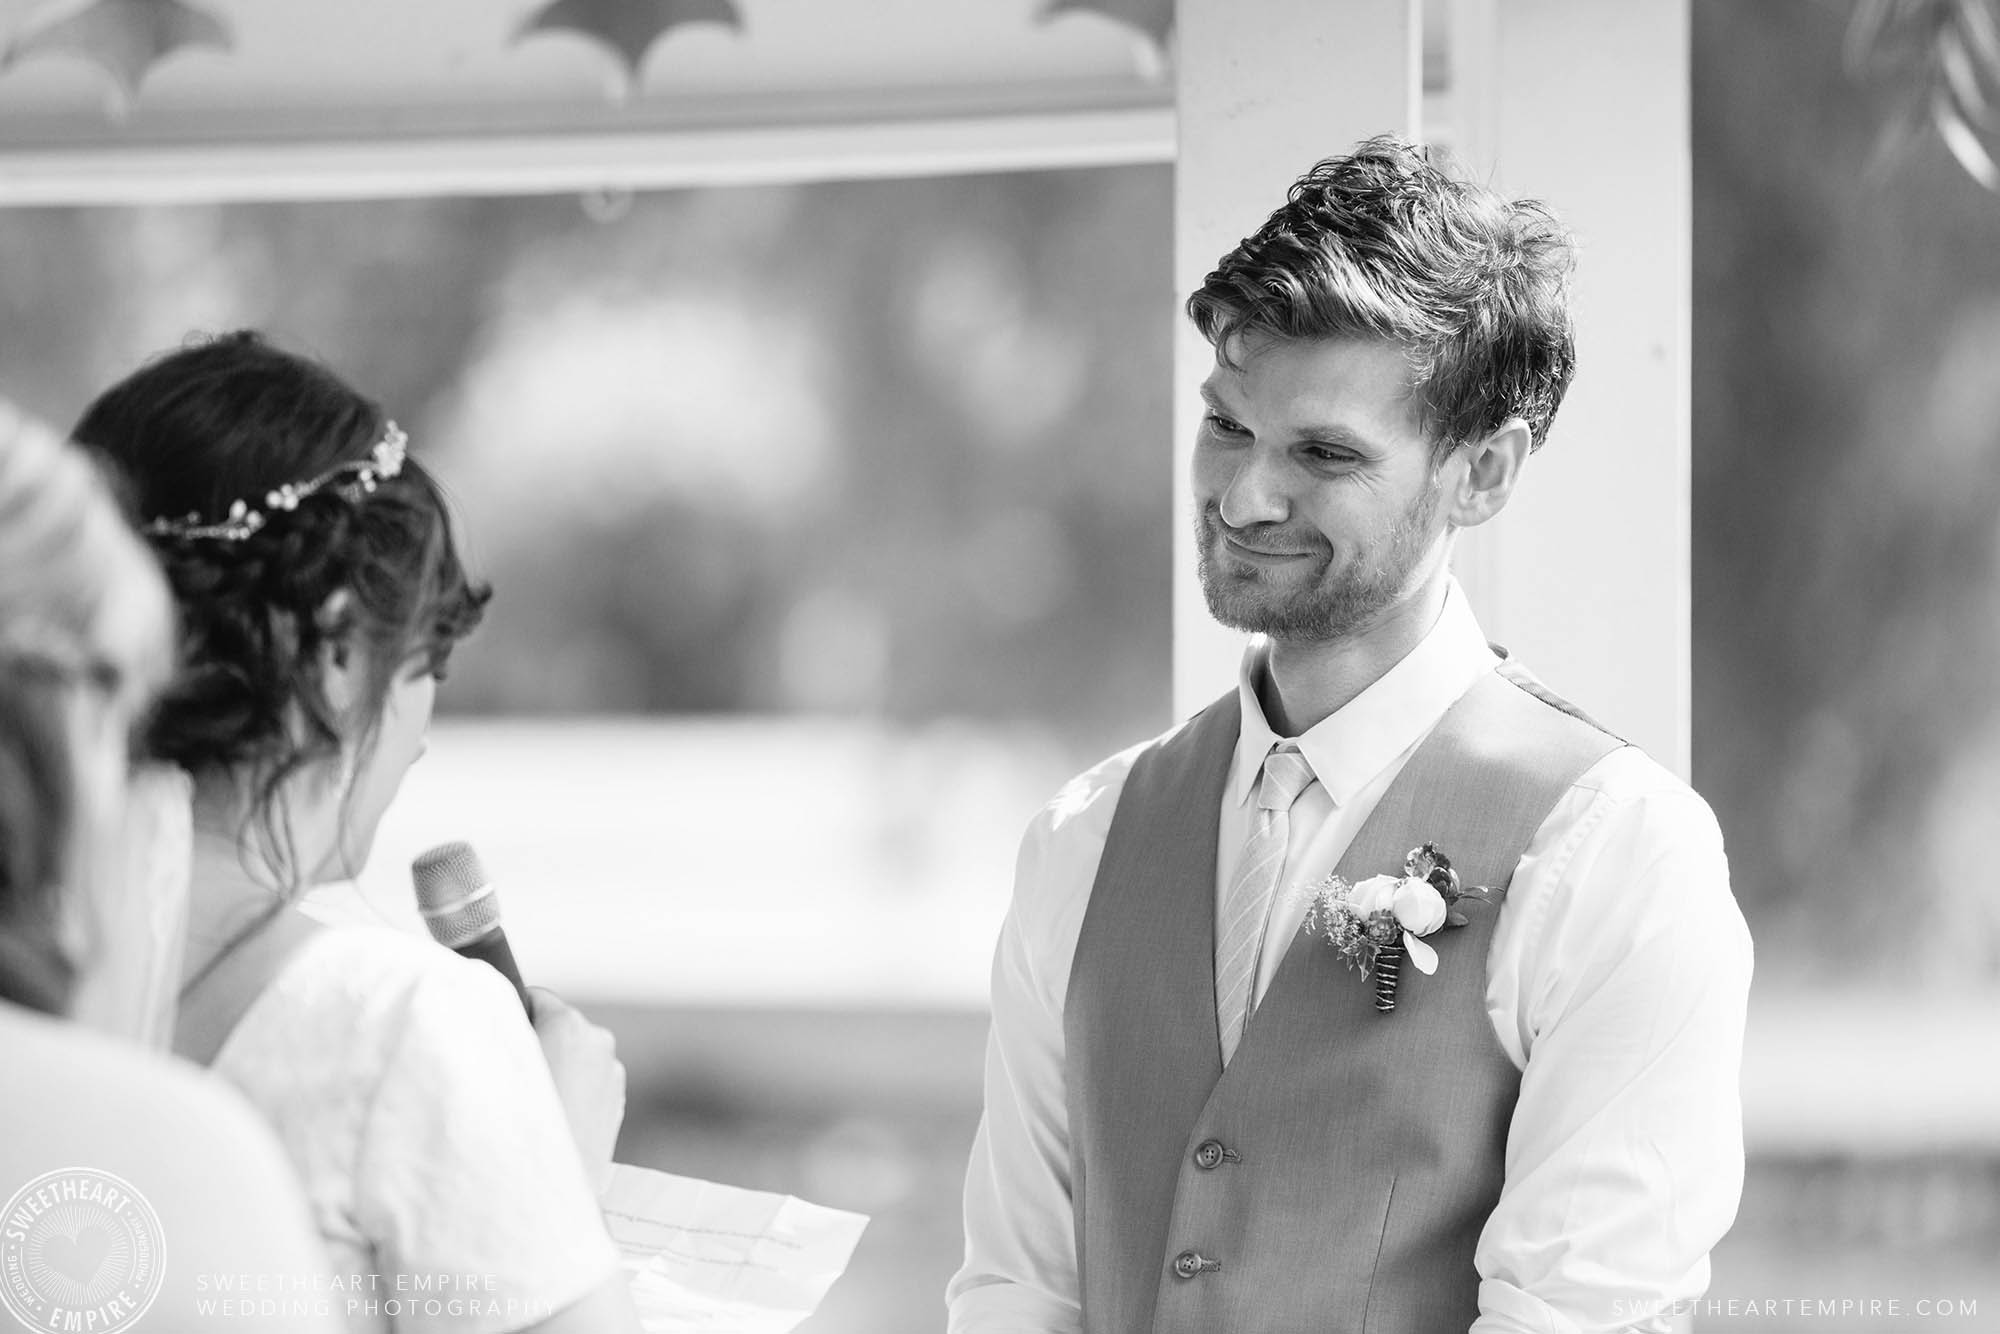 Teary-eyed groom listening to his bride say her vows.